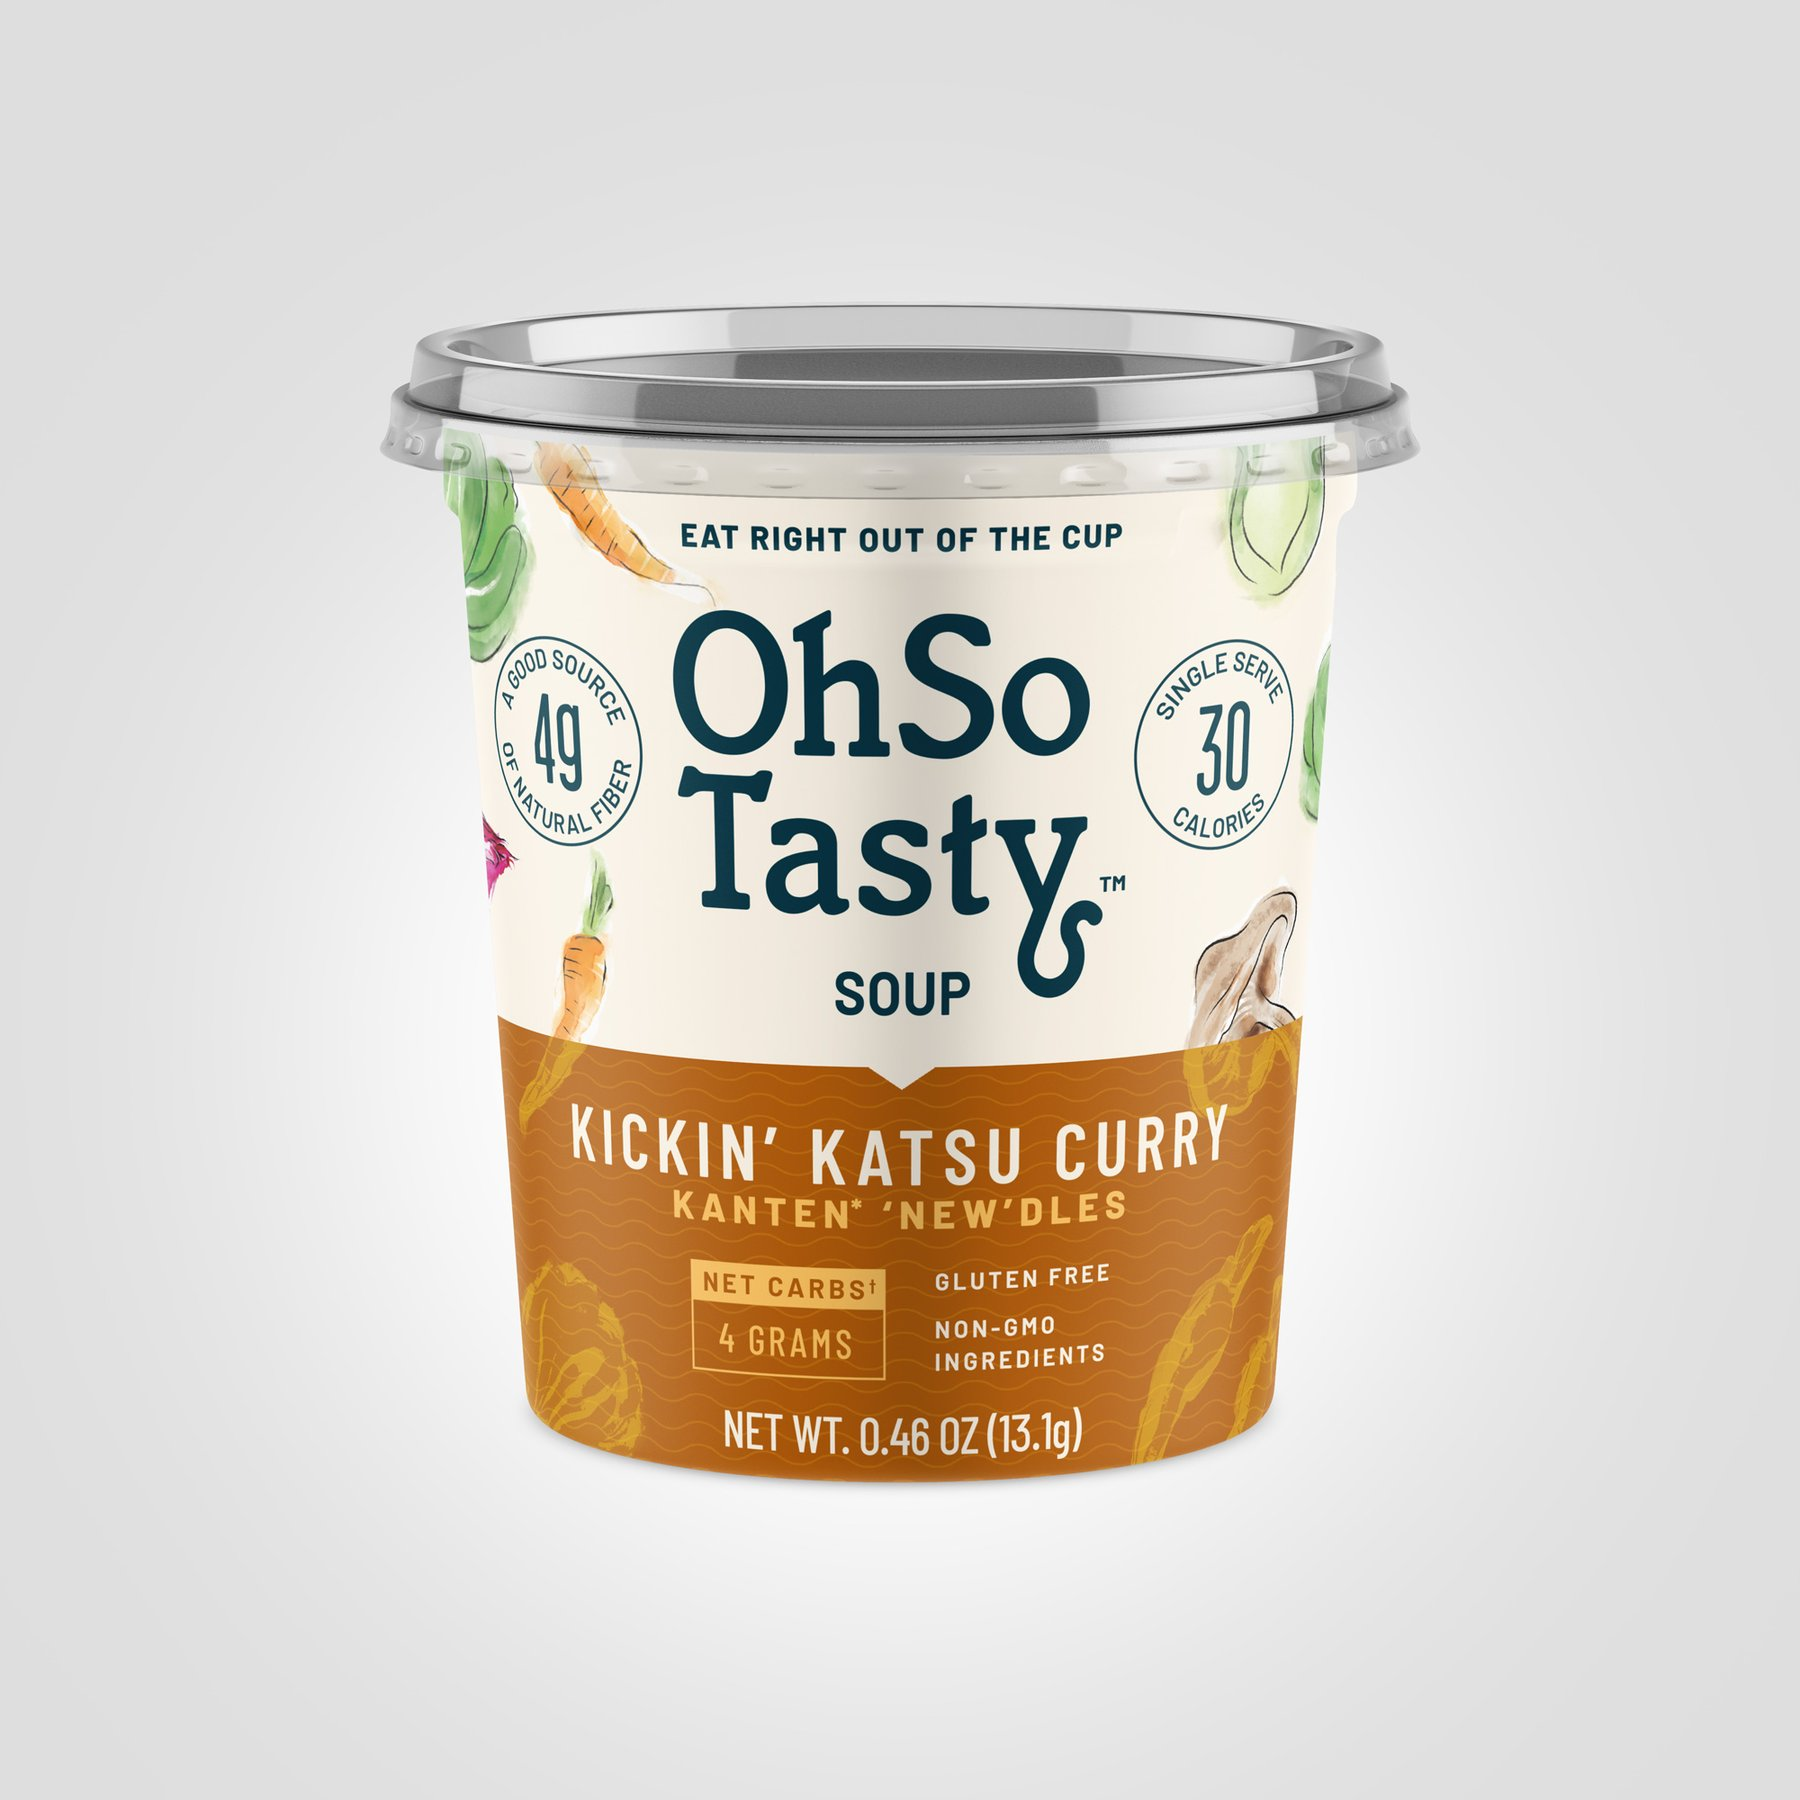 OhSo Tasty 3D mockup of the brand's packaging, providing strong product images with a dark yellow label.